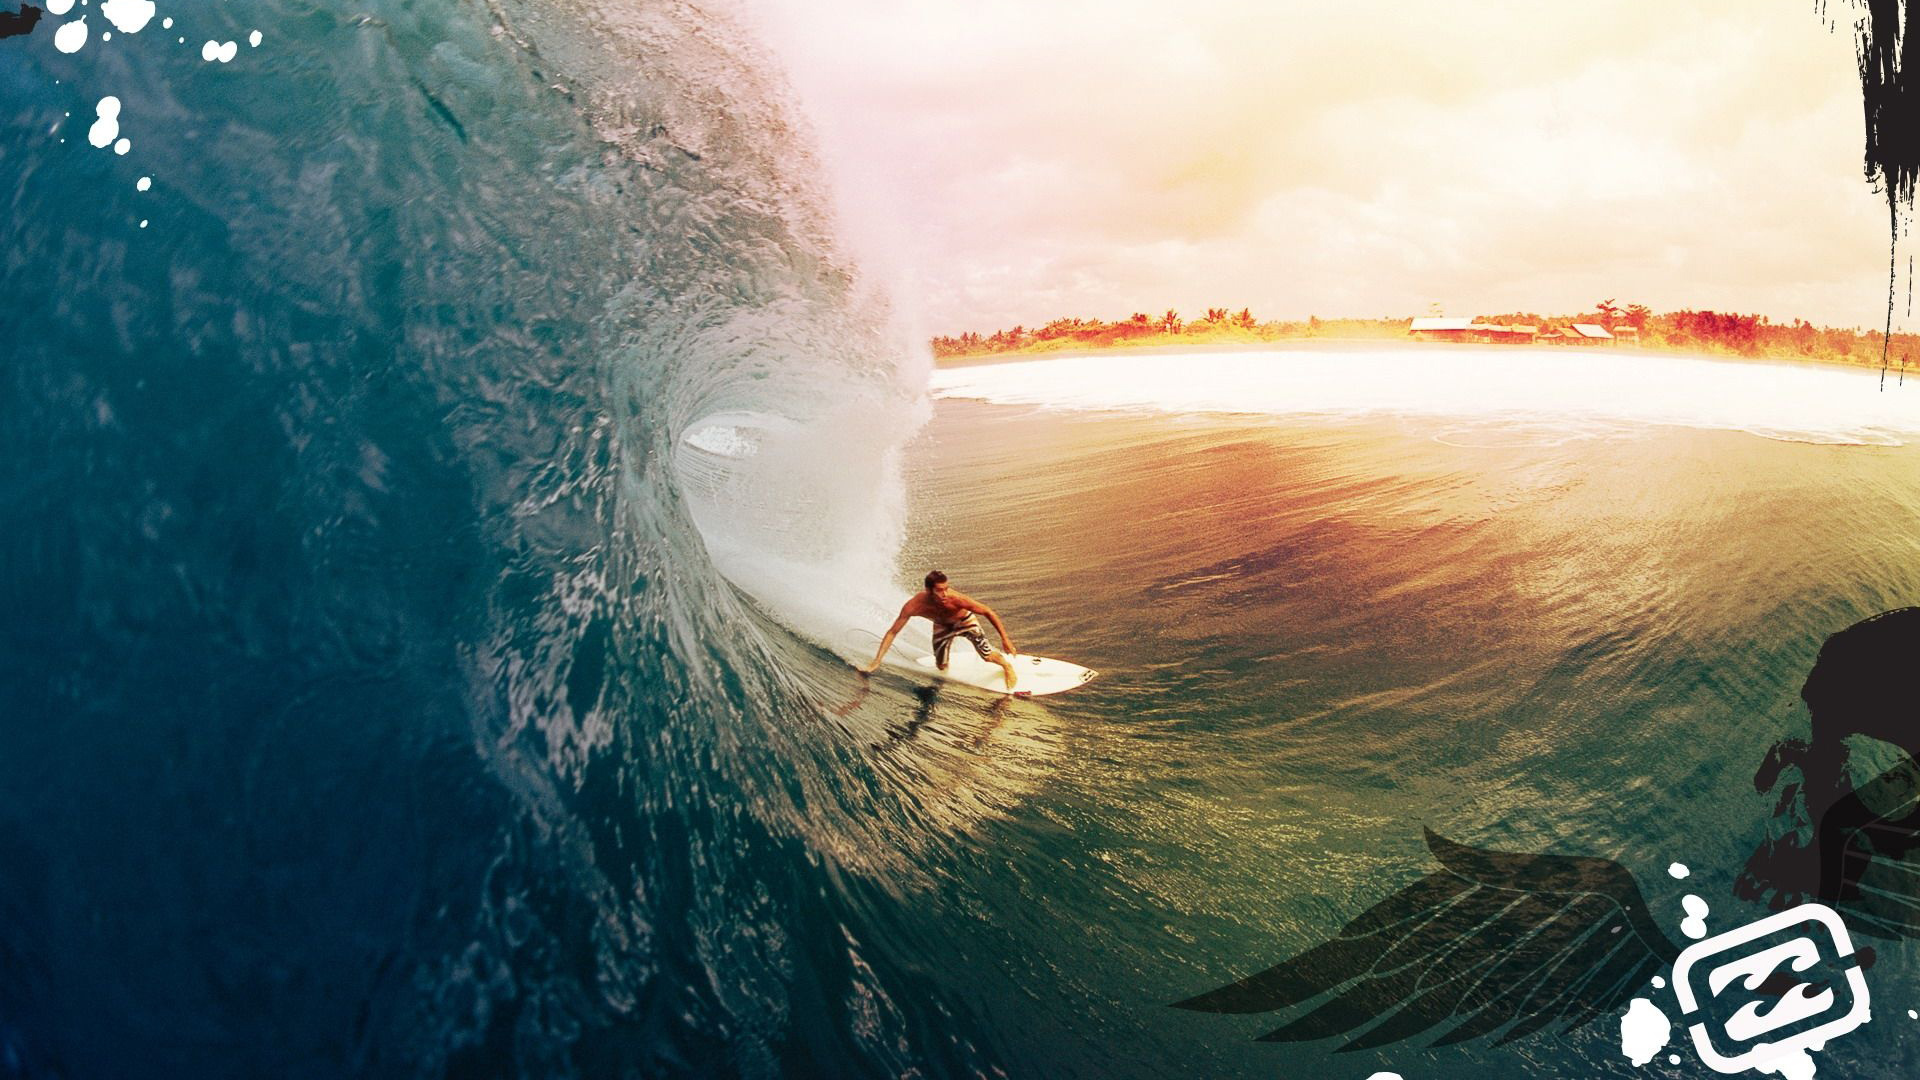 surfer surfing 1080p full hd wallpaper 1920x1080